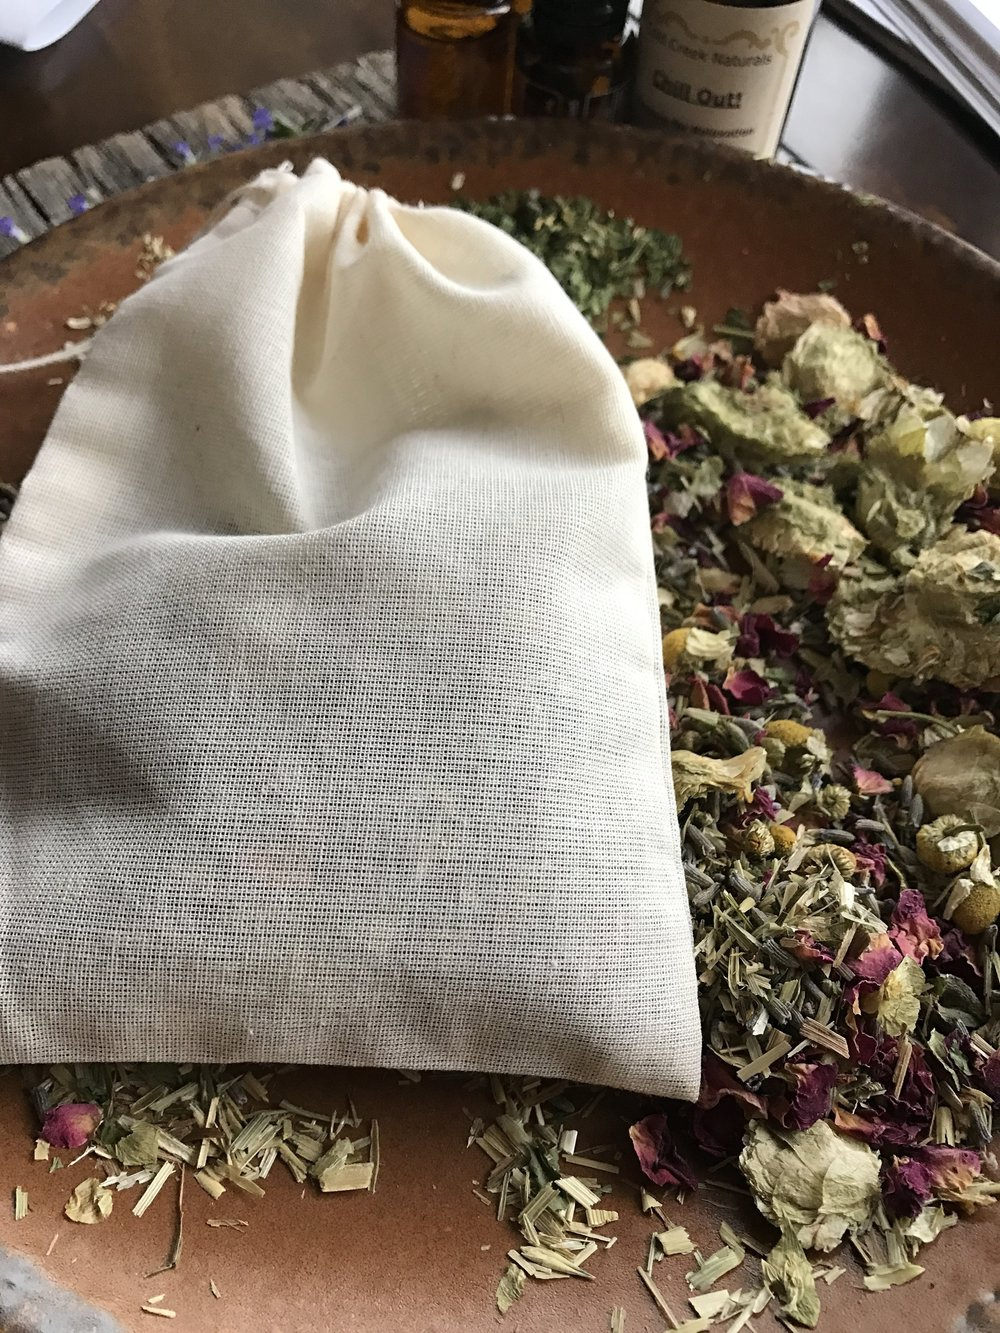 Using an organic cotton muslin bag with a drawstring is a great way to infuse your herbal teas!